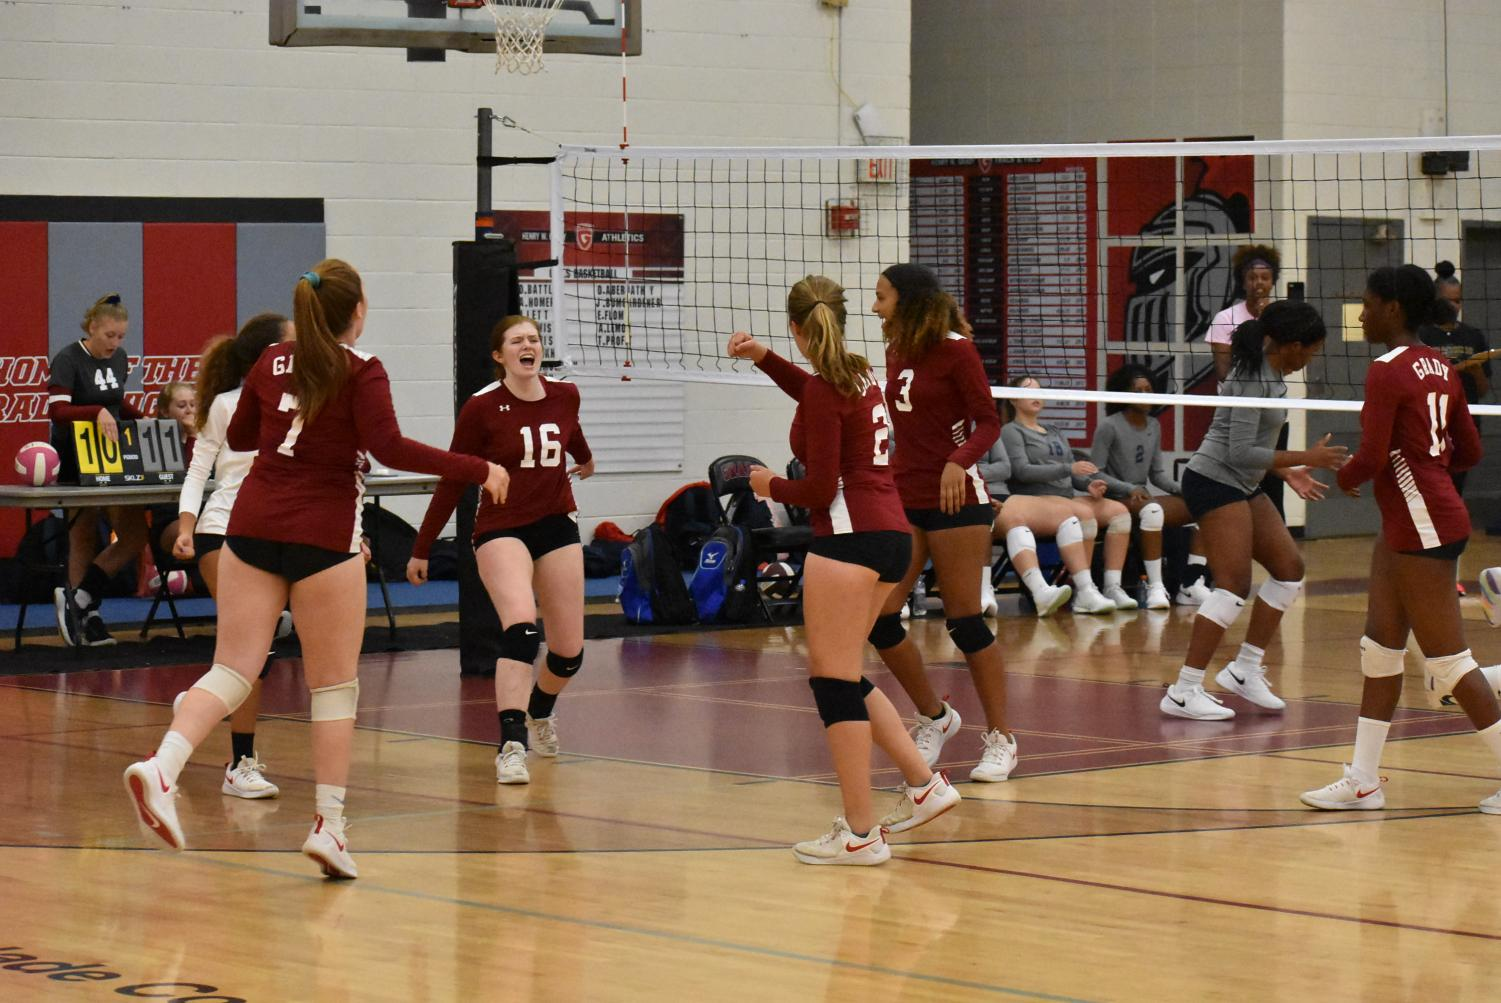 Senior Sadie Mothershed celebrates with her team after getting a point from a spike on the previous play against Locust Grove on August 28. The Lady Knights lost 2-1.